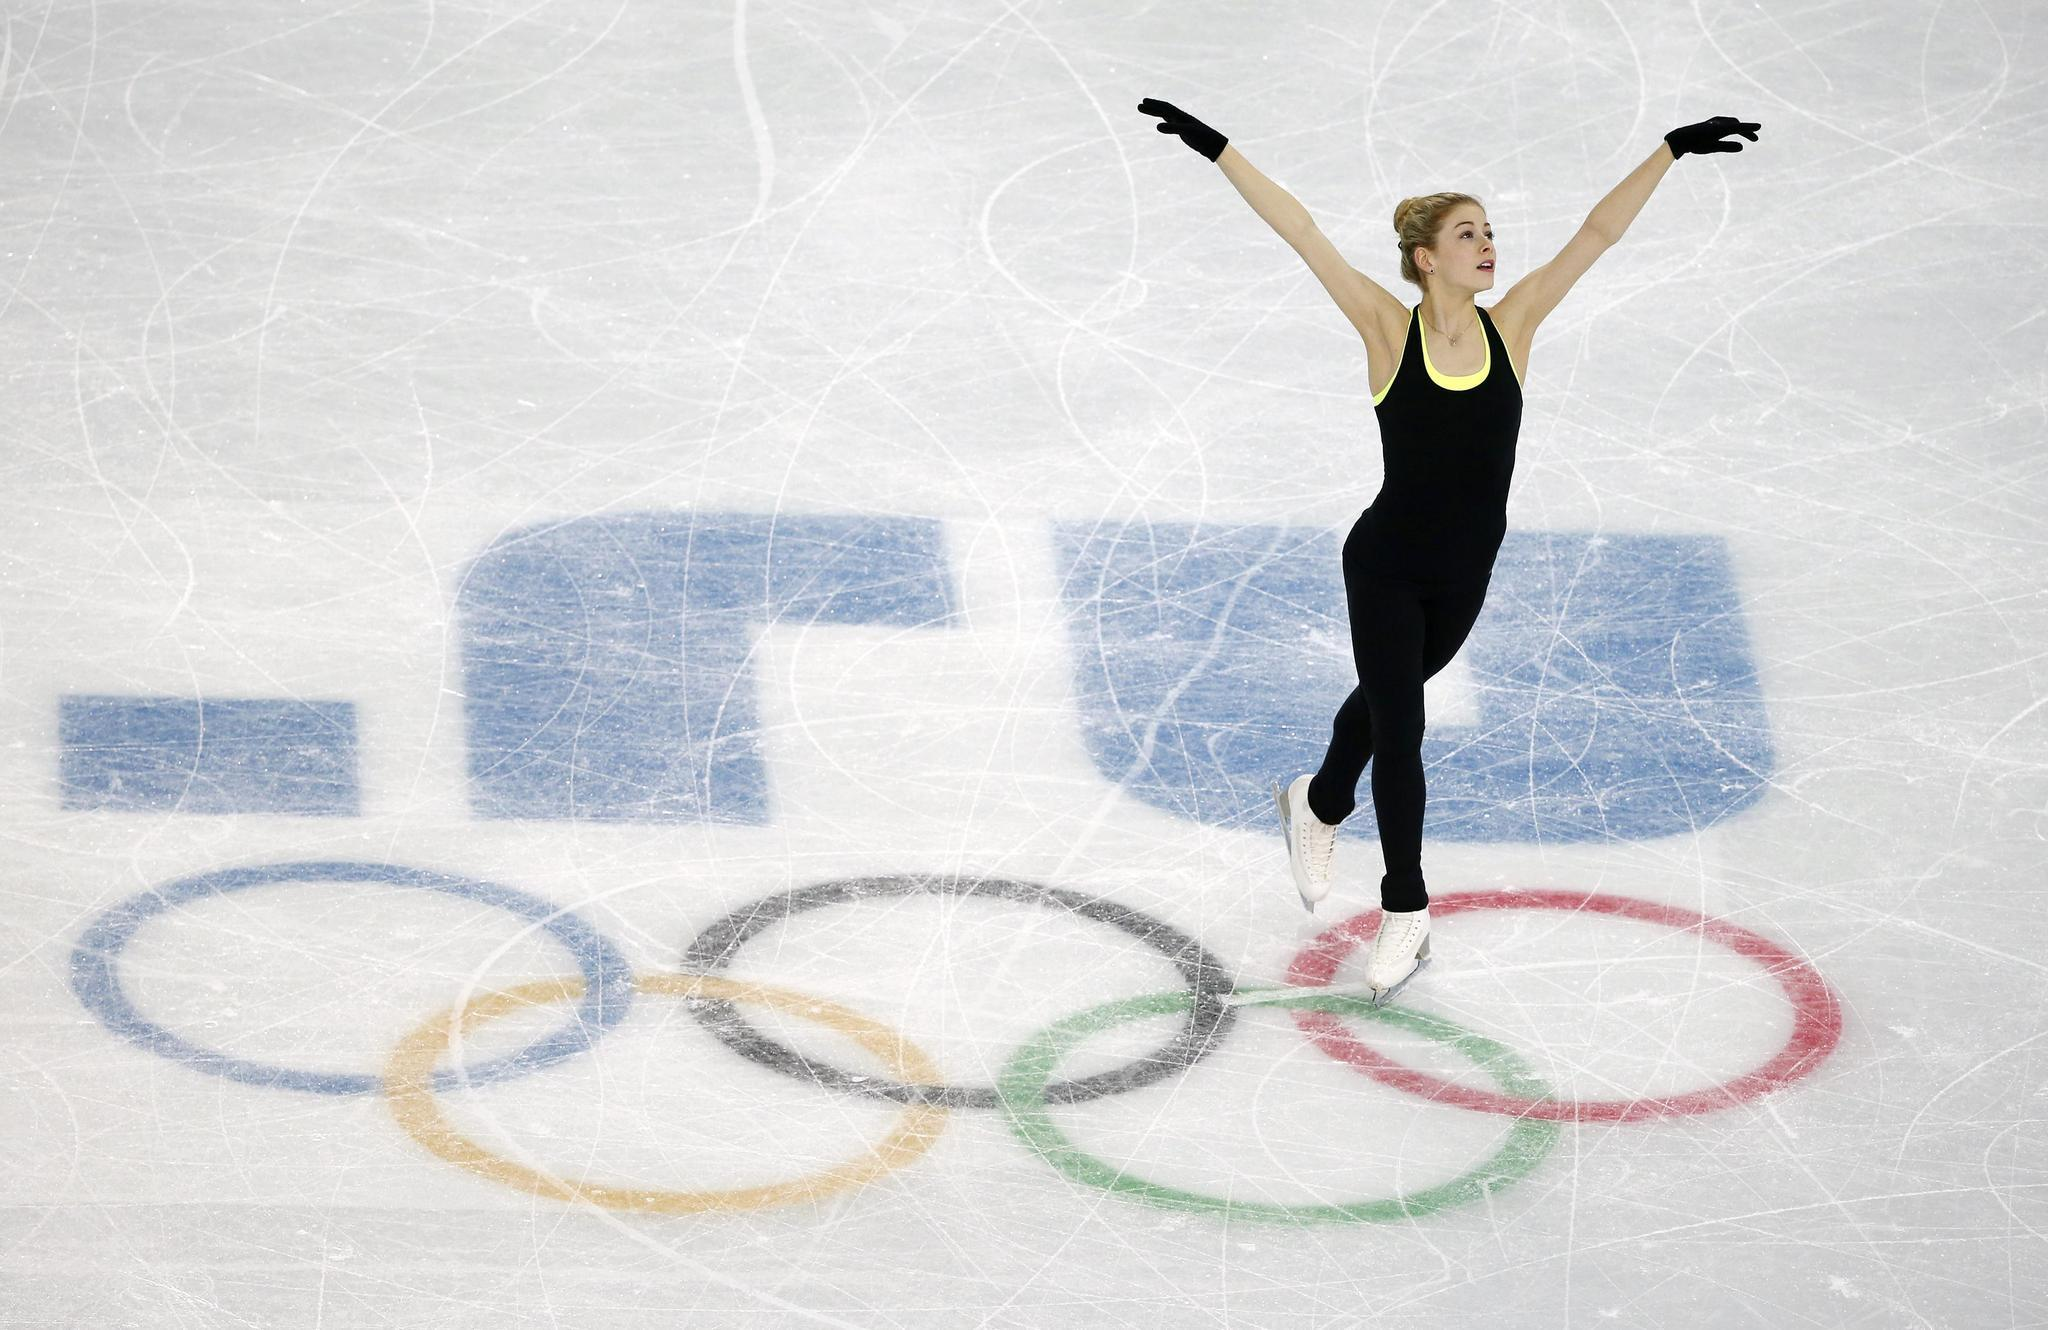 U.S. skater Gracie Gold practices her routine during a training session at the Iceberg Skating Palace.